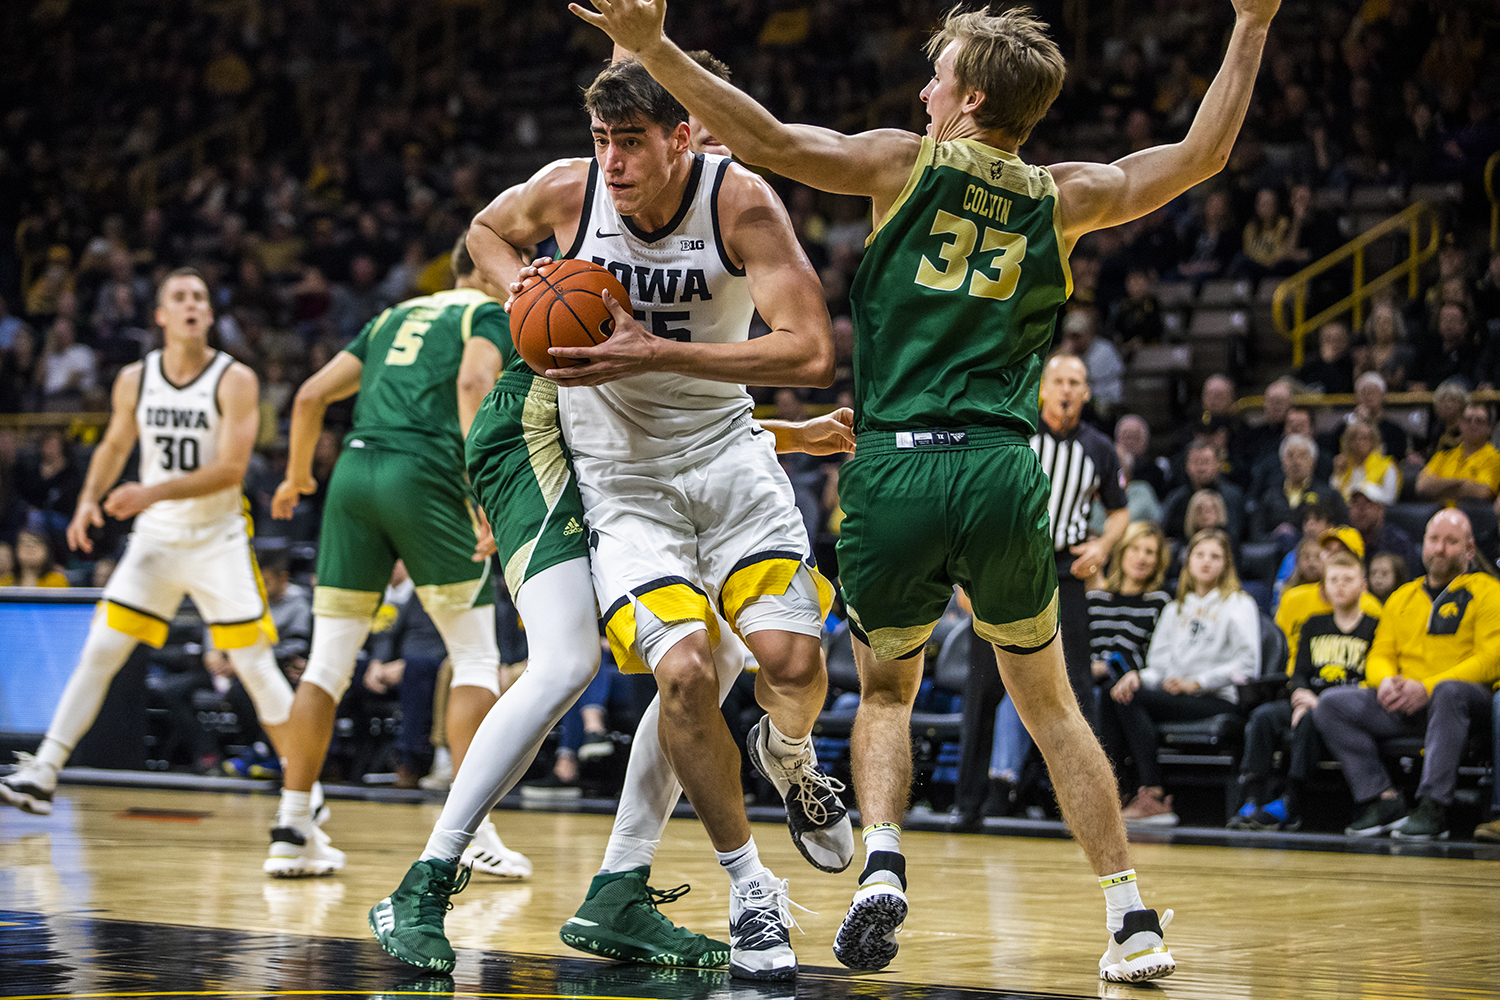 Iowa center Luka Garza drives the ball during the men's basketball game against Cal Poly at Carver-Hawkeye Arena on Sunday, November 24, 2019.